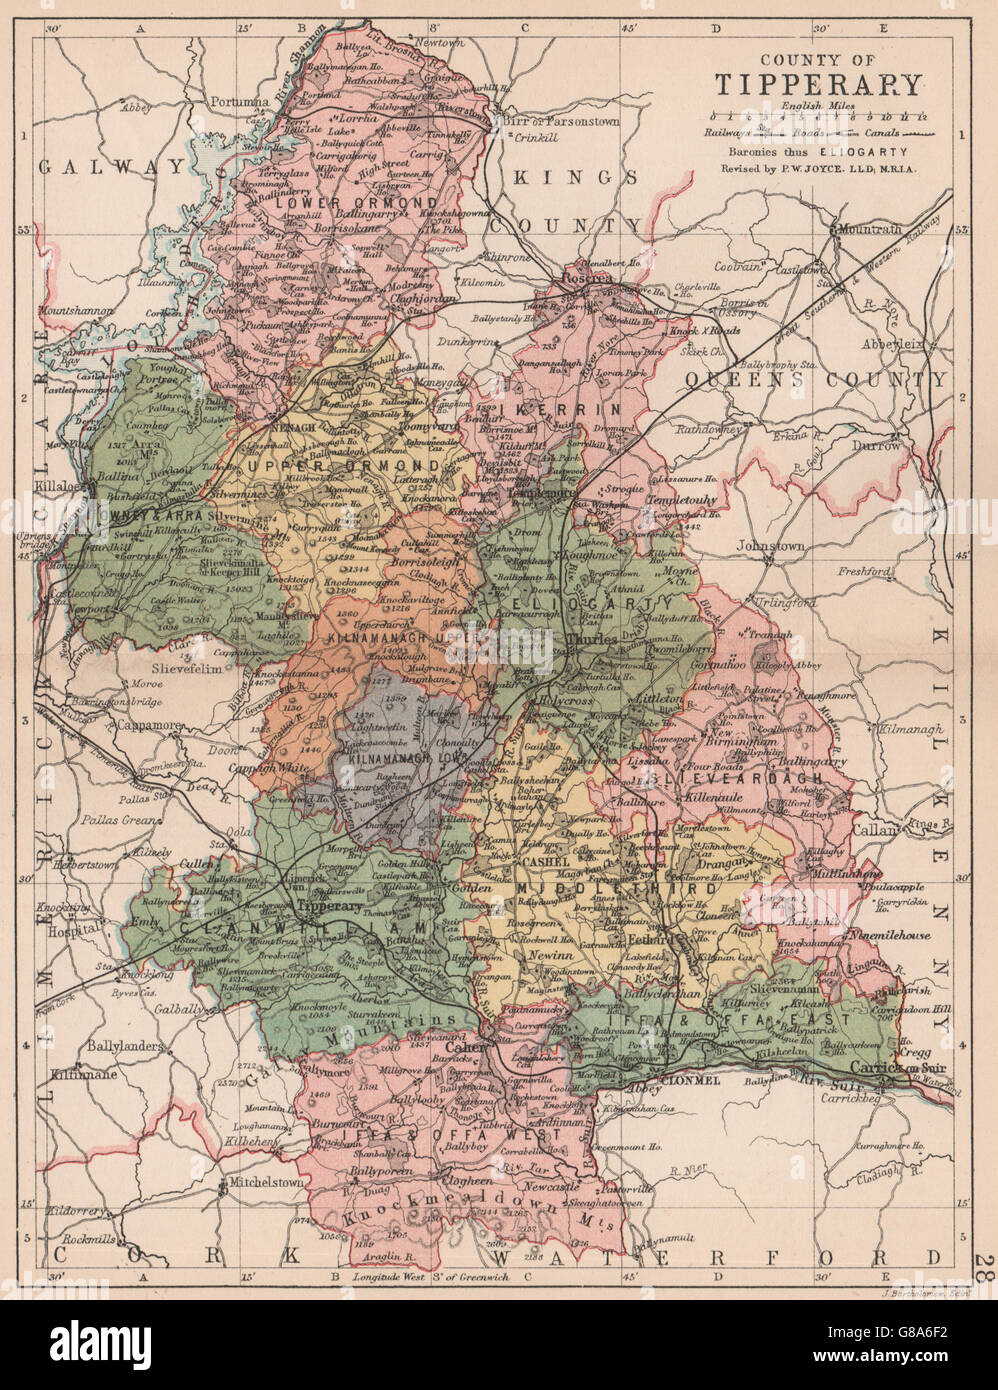 County Tipperary Ireland Map.County Tipperary Antique County Map Munster Ireland Bartholomew